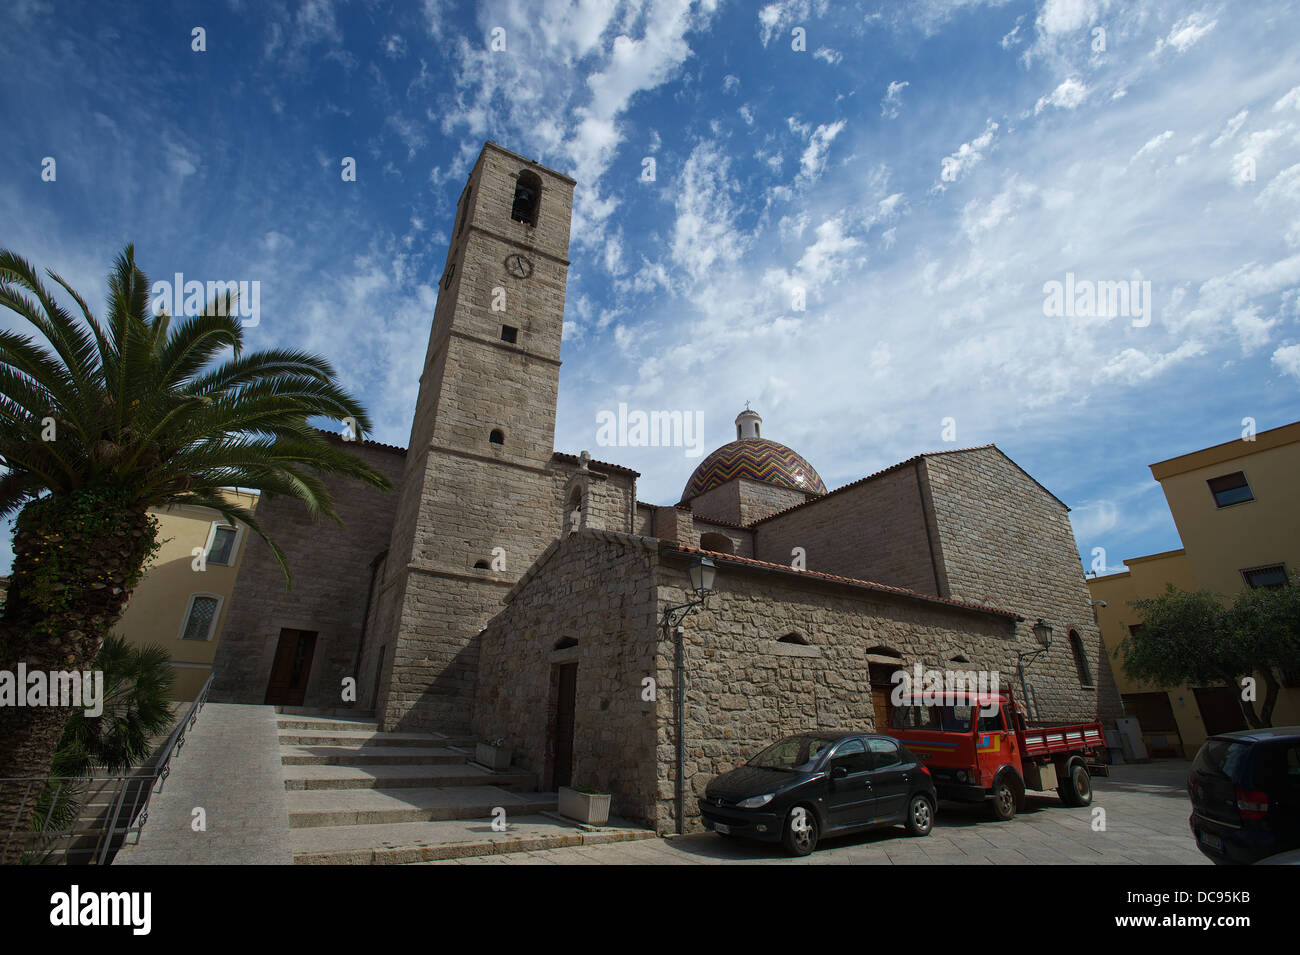 San Paolo church in Olbia, Sardinia - Stock Image